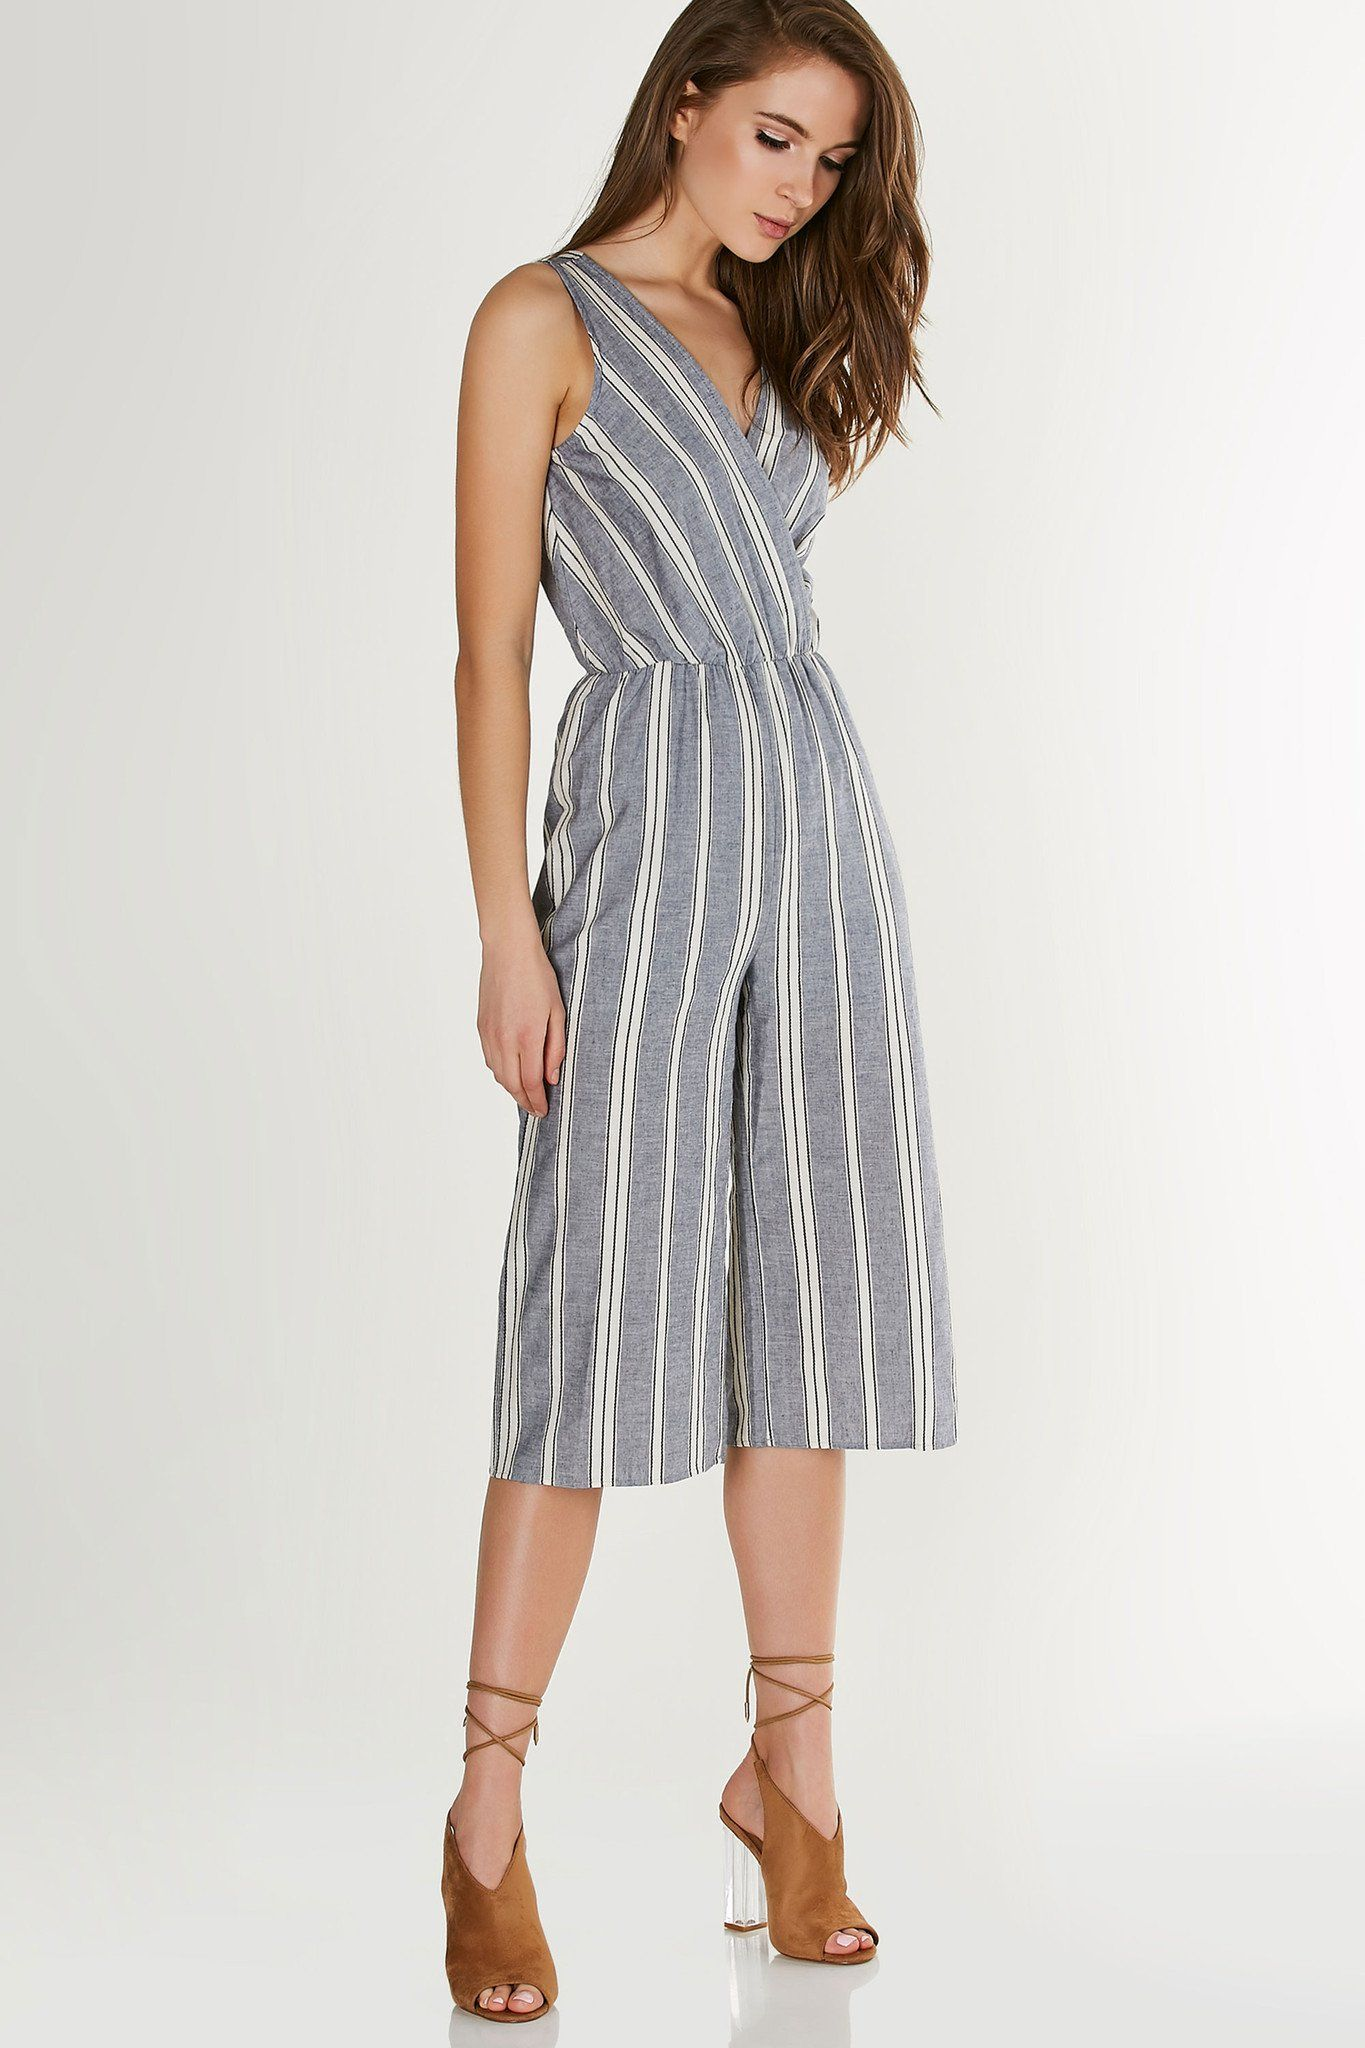 99d76b1843d Chic sleeveless jumpsuit with stripe patterns throughout. Overlap neckline  with elasticised waist and straight leg fit.